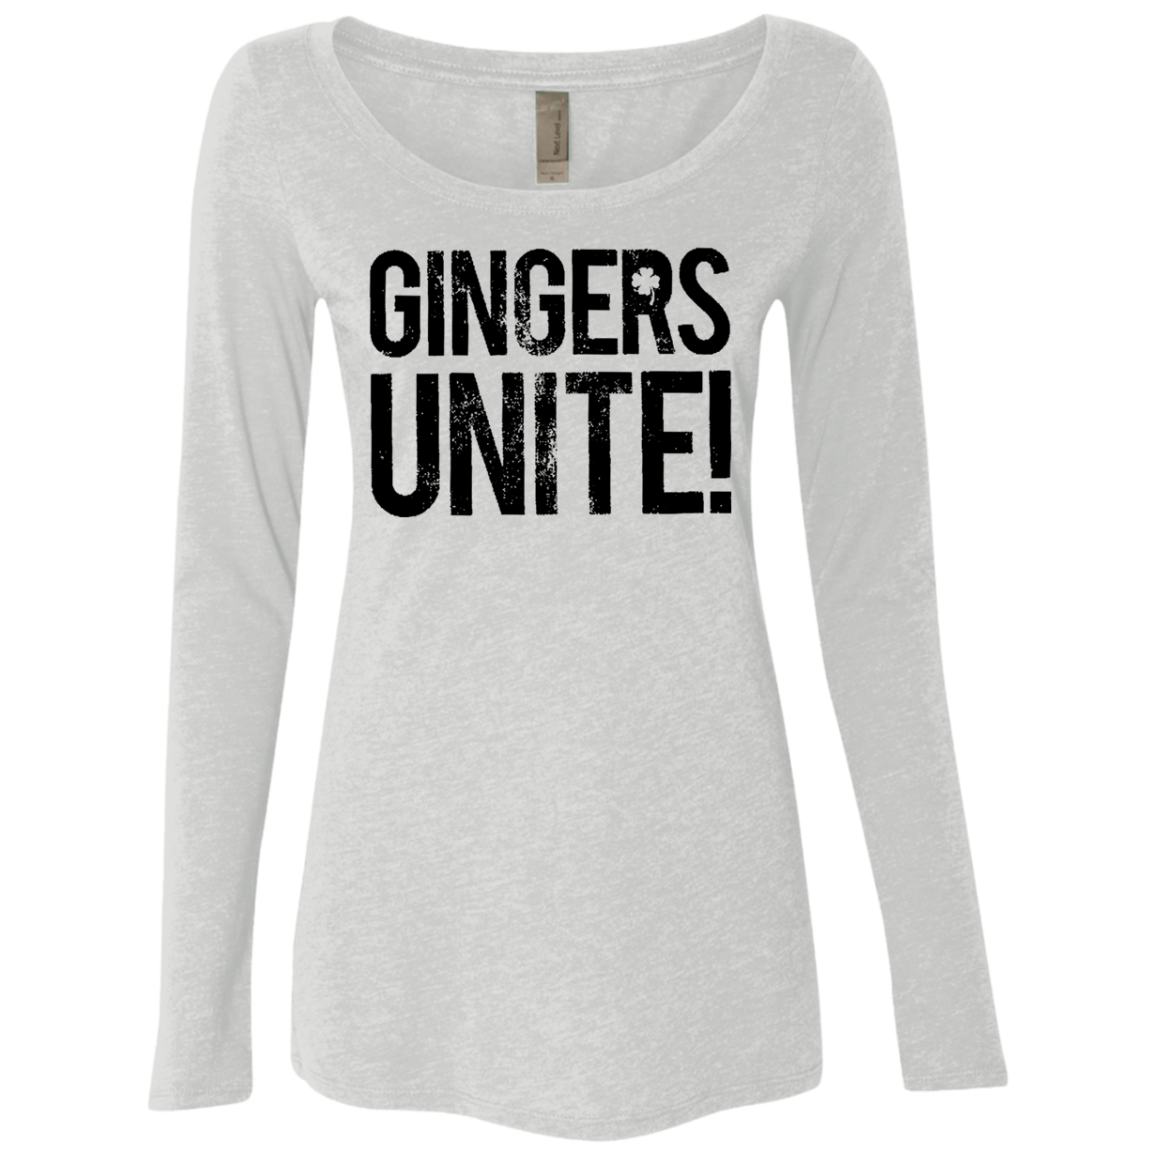 GINGERS UNITE! Women's Long Sleeve Tee